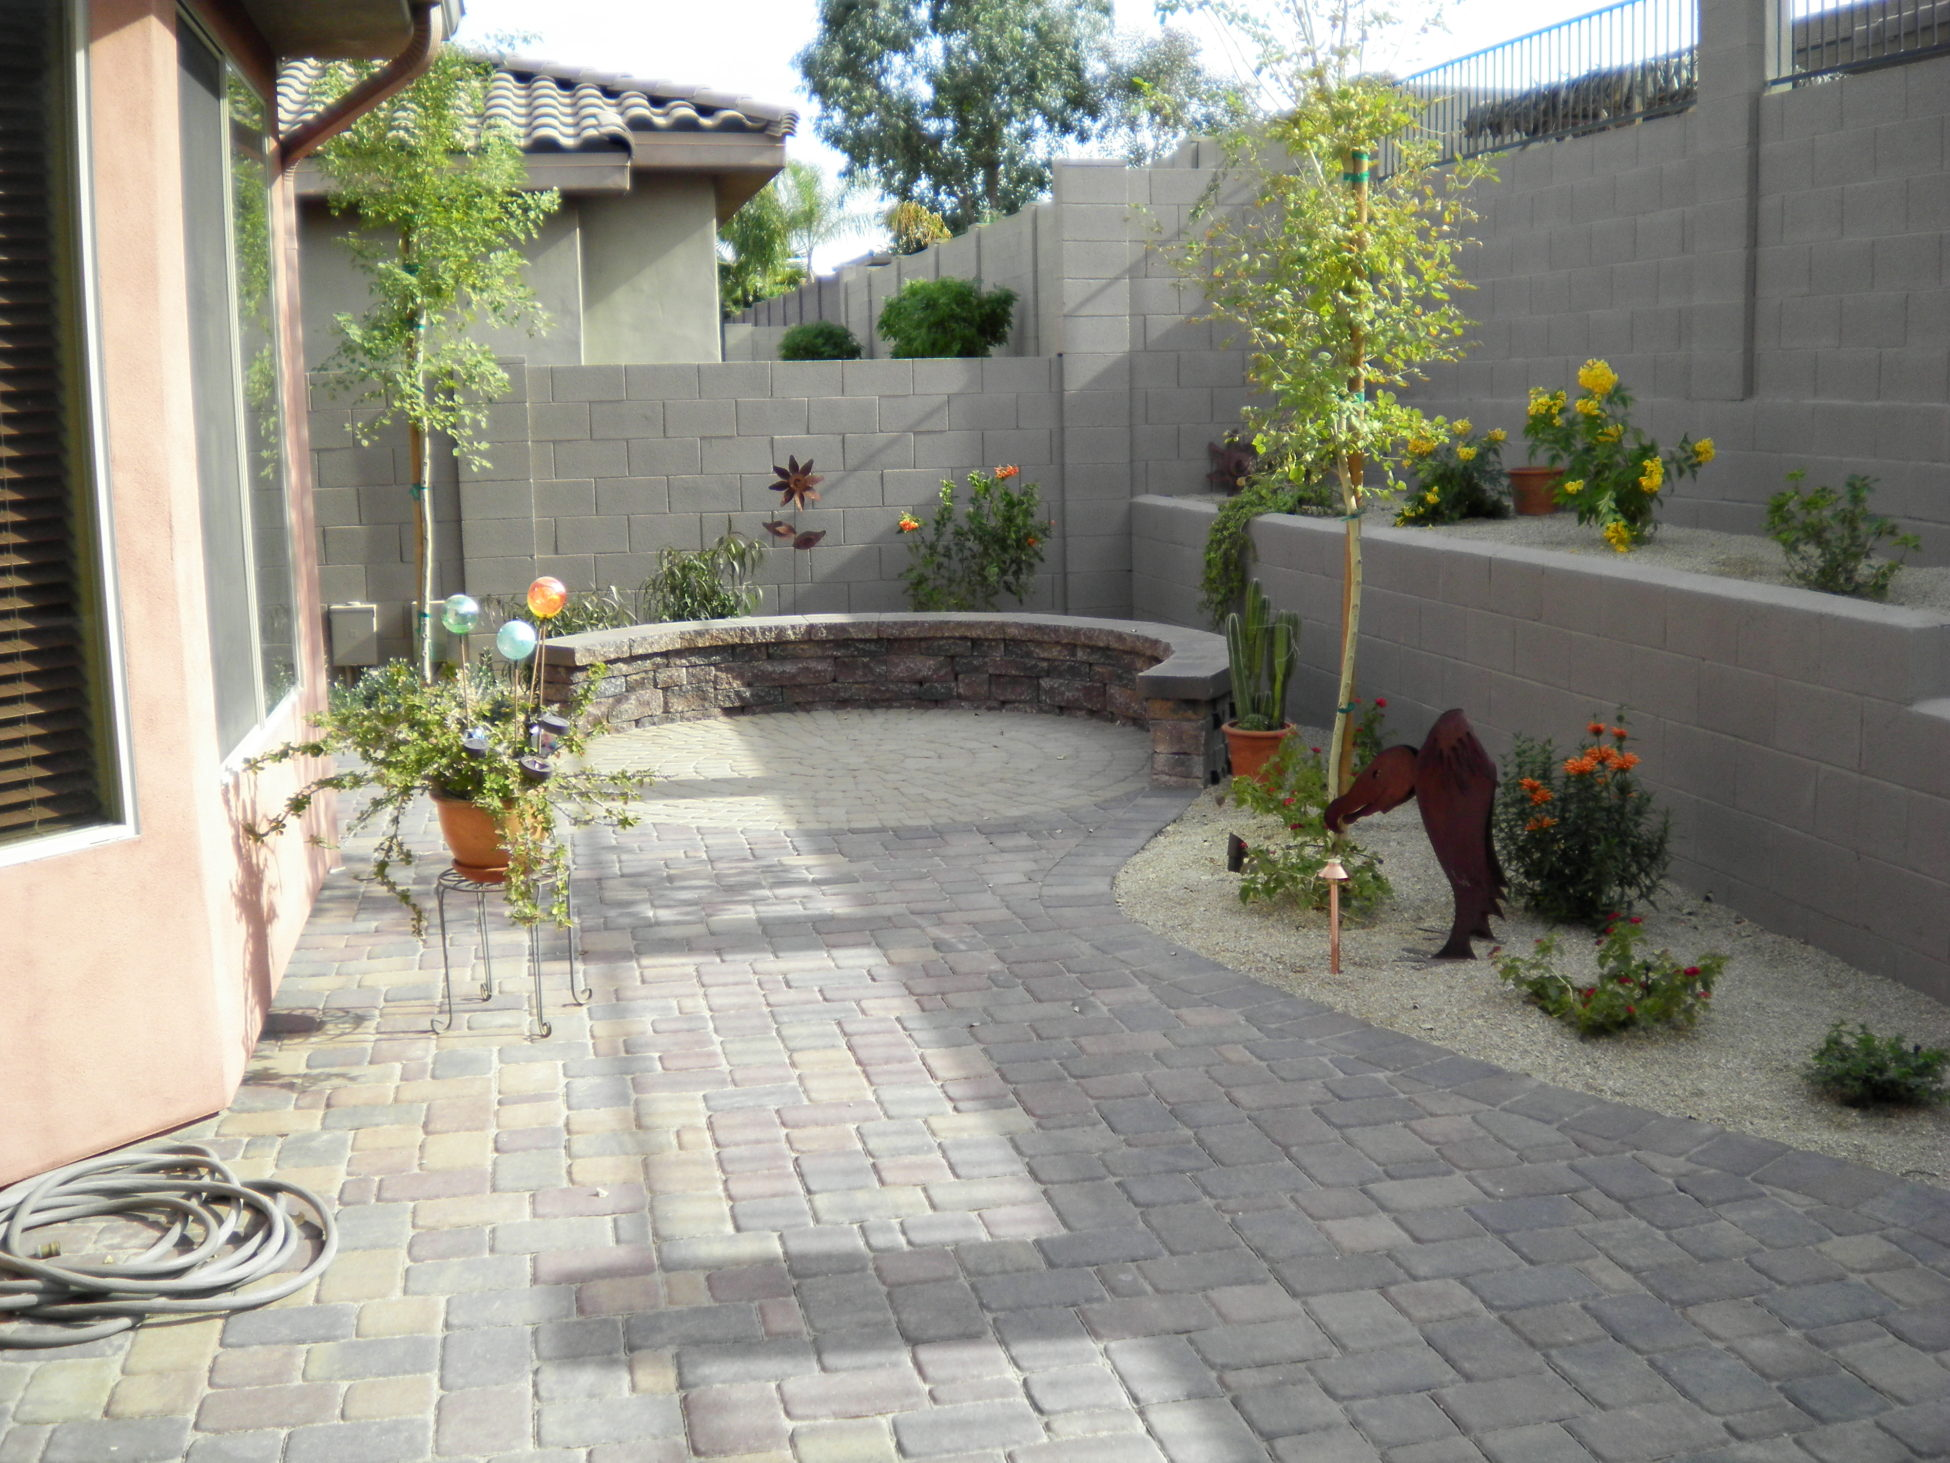 enhanced but also a patio install pavers and paver lawn the butler all or in concrete that this firepit landscape does have grounds regard maintenance than why has rather function